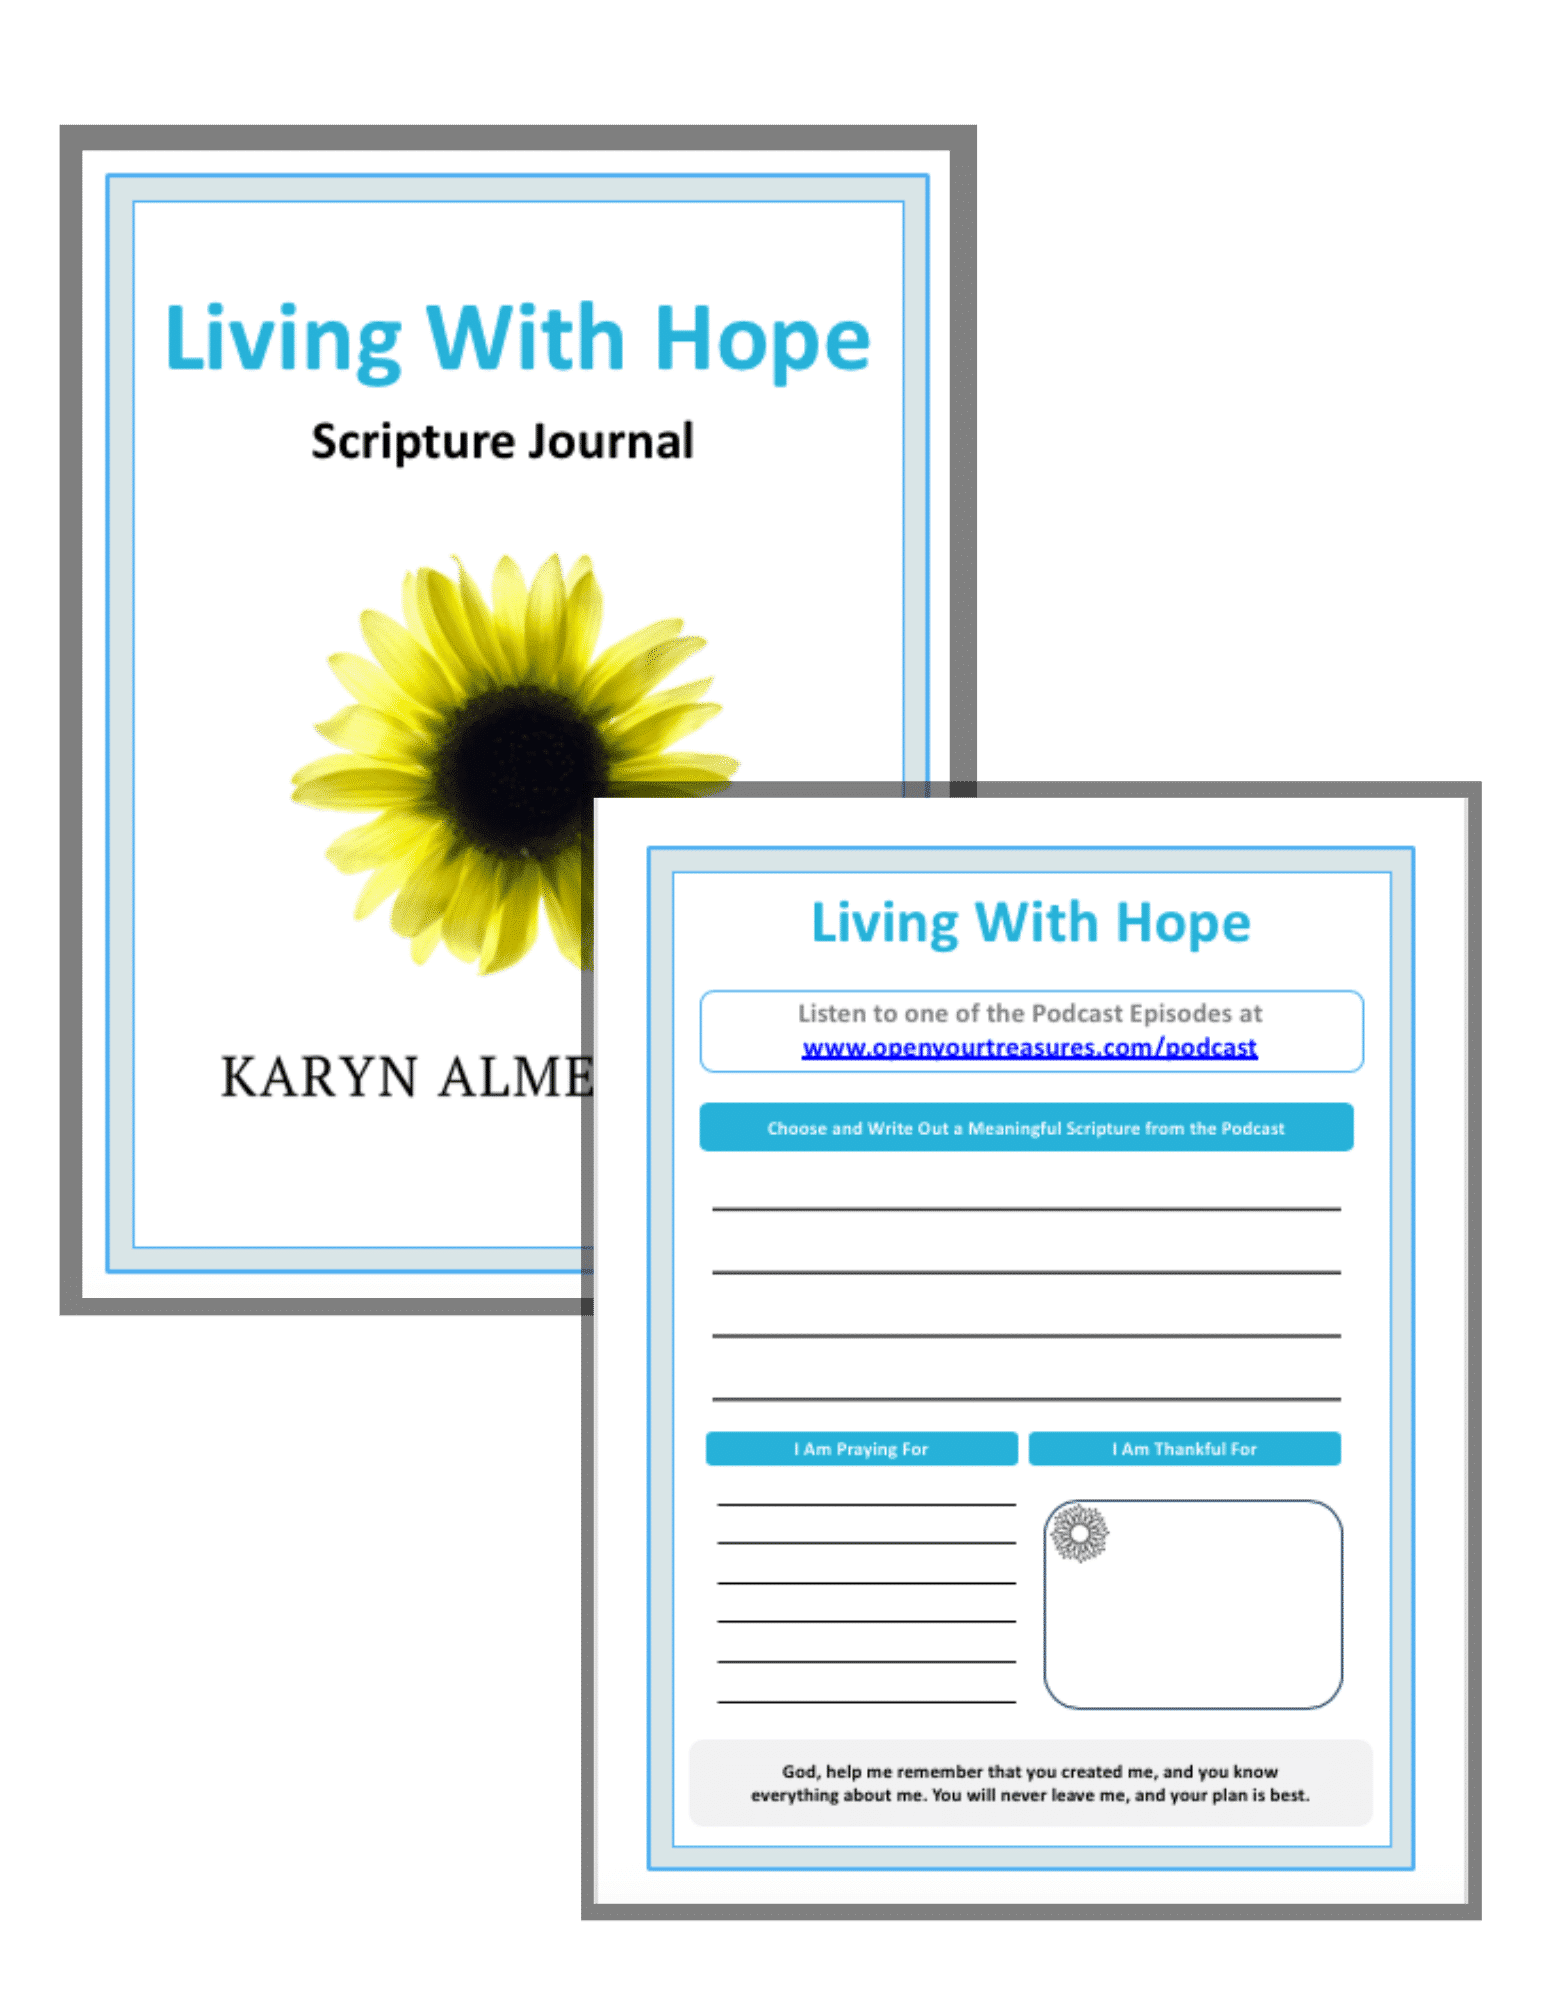 Living With Hope Scripture Journal image